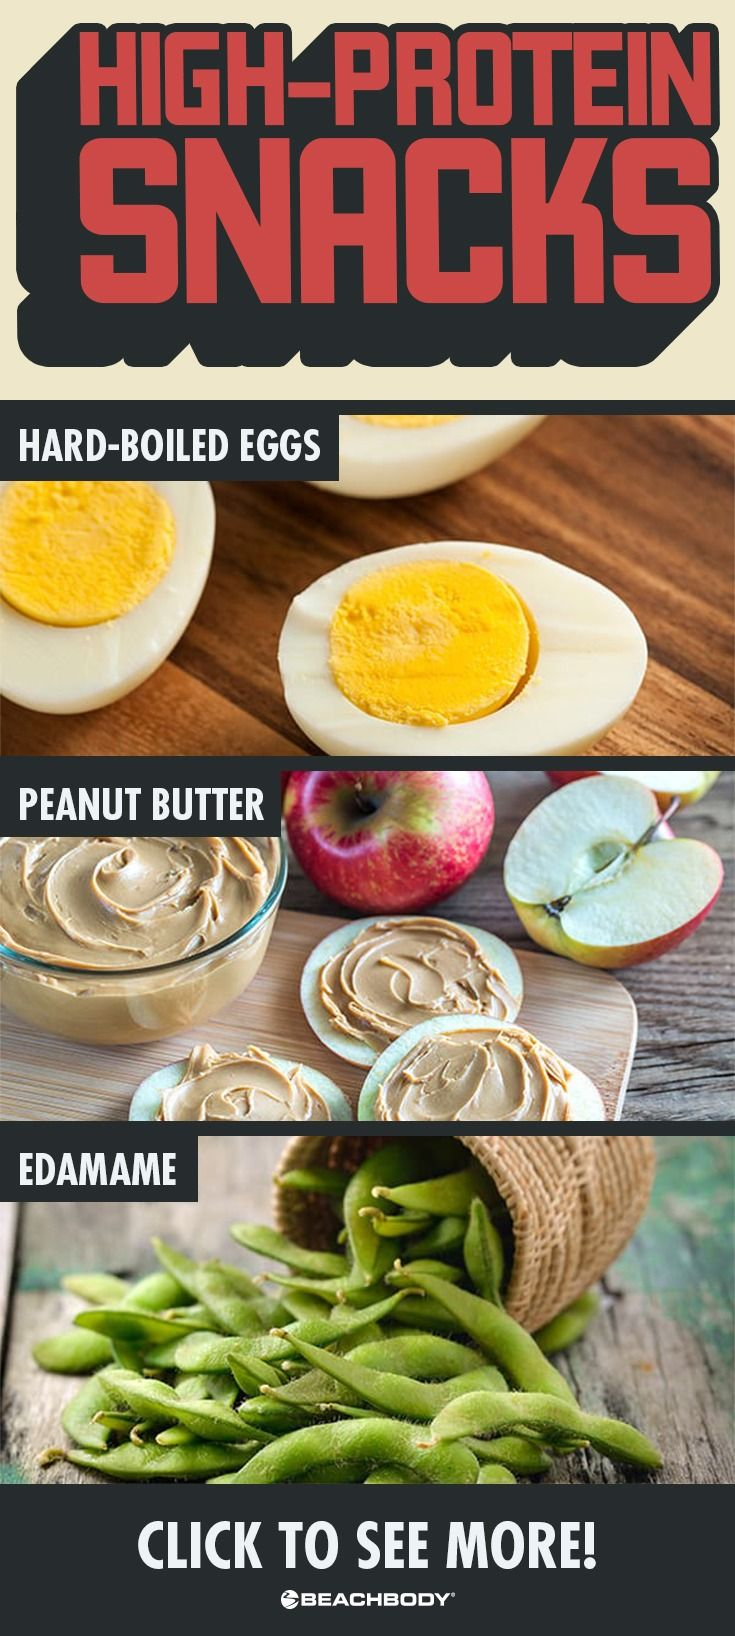 Check out these delicious and high protein snacks to keep you fueled up all day.  Dieting tips// high protein snacks // peanut butter// weight loss tips// hard boiled eggs// 21 Day Fix recipe // Meal prep // Meal planning// Best 21 Day Fix recipes // Beachbody // Beachbody blog